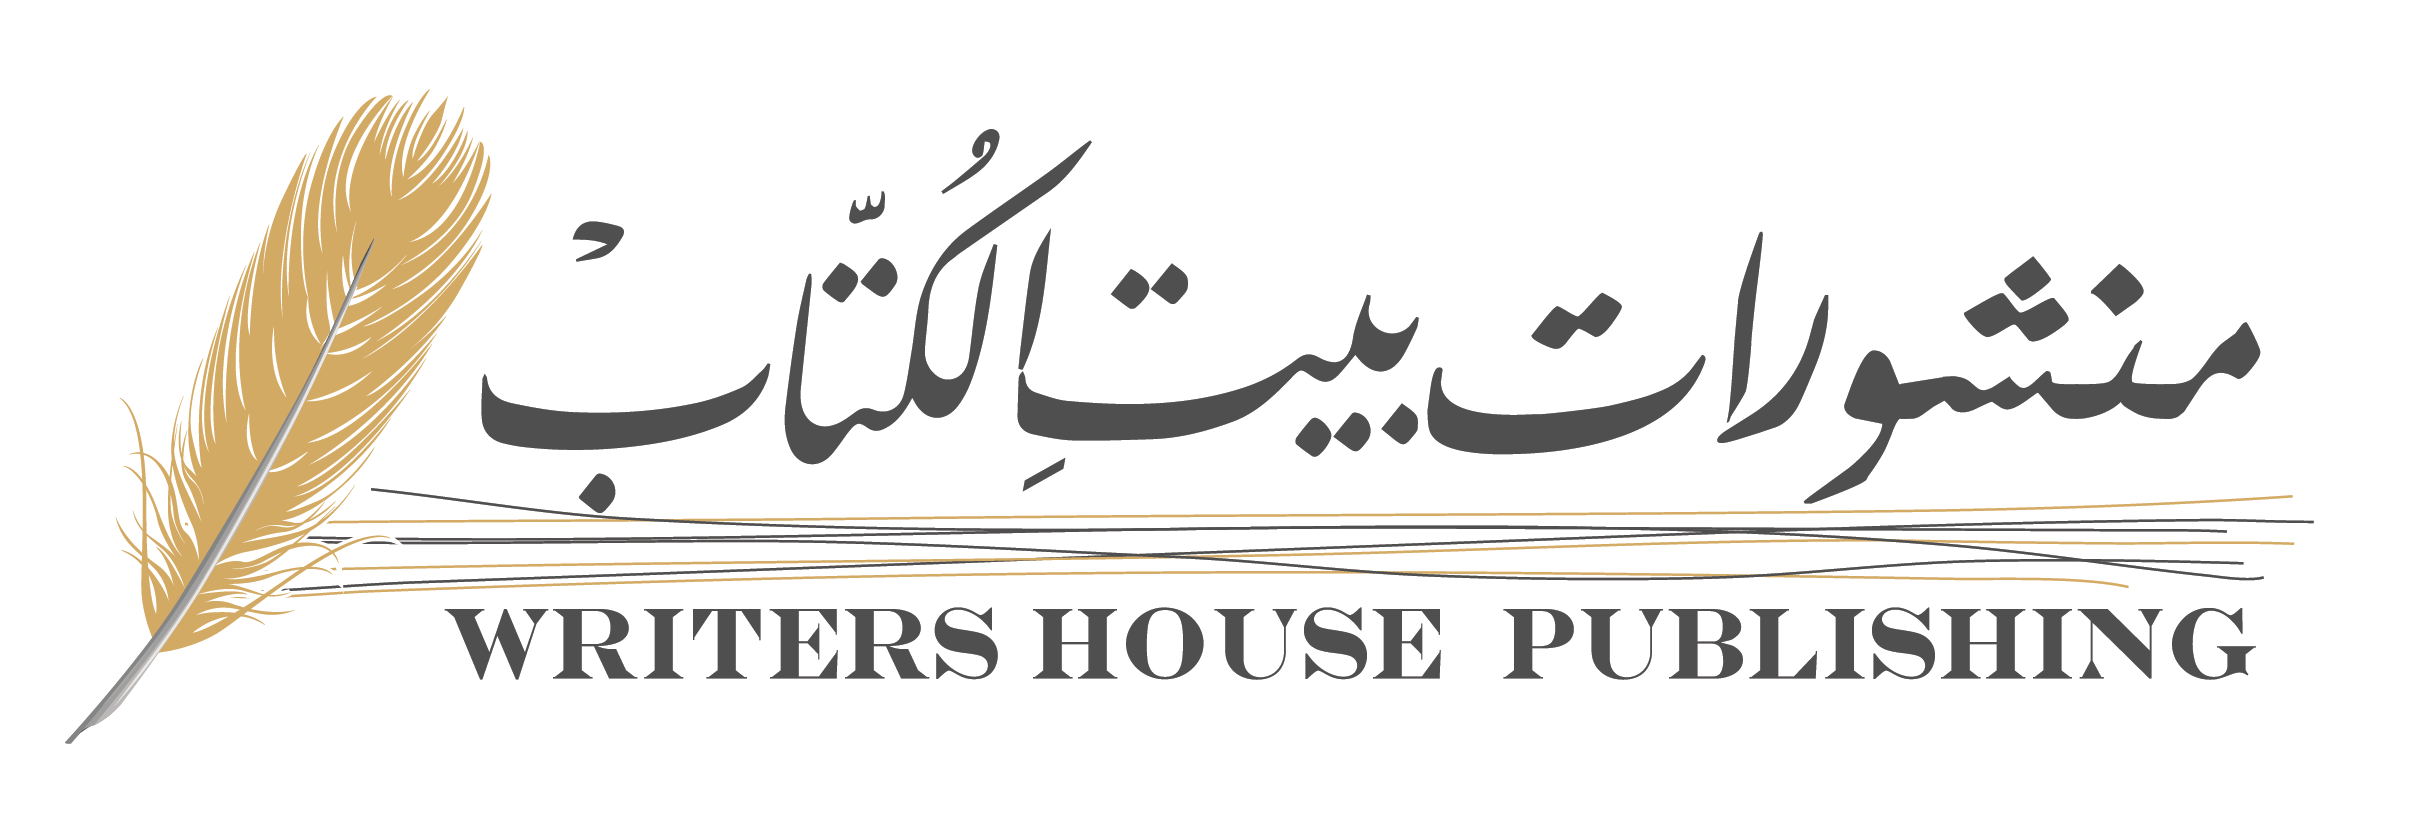 Writers House Publishing